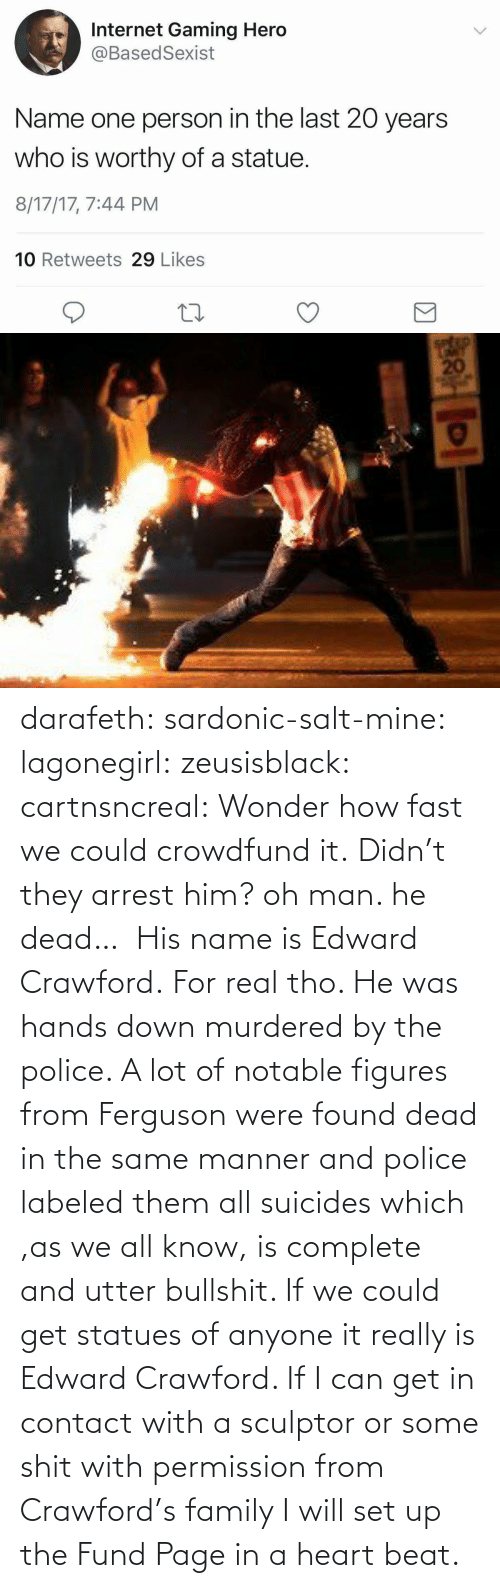 Oh: darafeth: sardonic-salt-mine:  lagonegirl:  zeusisblack:  cartnsncreal:   Wonder how fast we could crowdfund it.    Didn't they arrest him?  oh man. he dead…   His name is Edward Crawford.   For real tho. He was hands down murdered by the police. A lot of notable figures from Ferguson were found dead in the same manner and police labeled them all suicides which ,as we all know, is complete and utter bullshit.  If we could get statues of anyone it really is Edward Crawford. If I can get in contact with a sculptor or some shit with permission from Crawford's family I will set up the Fund Page in a heart beat.